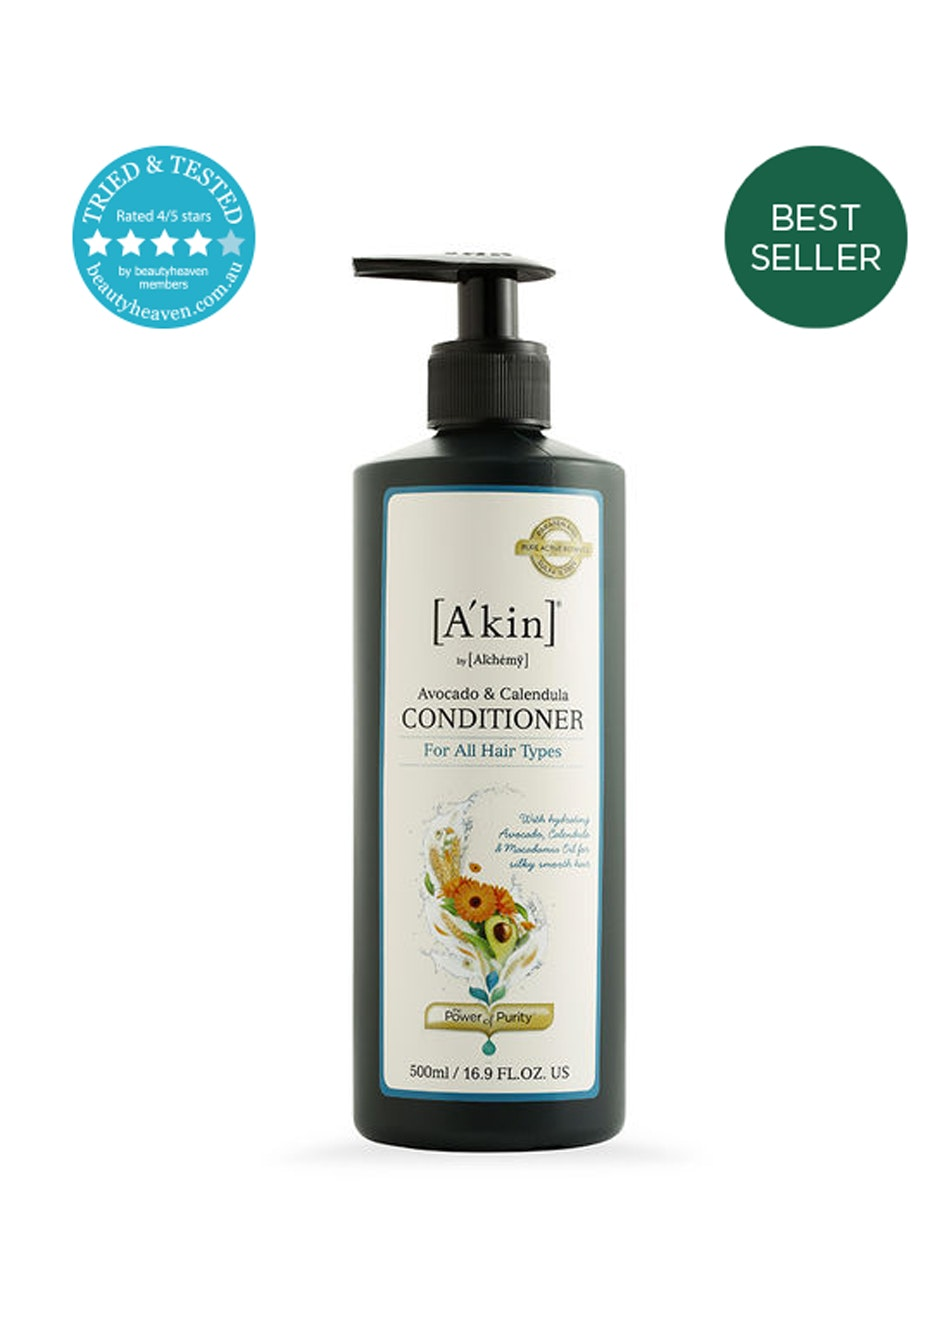 A'kin  - Avocado & Calendula Conditioner 500ml